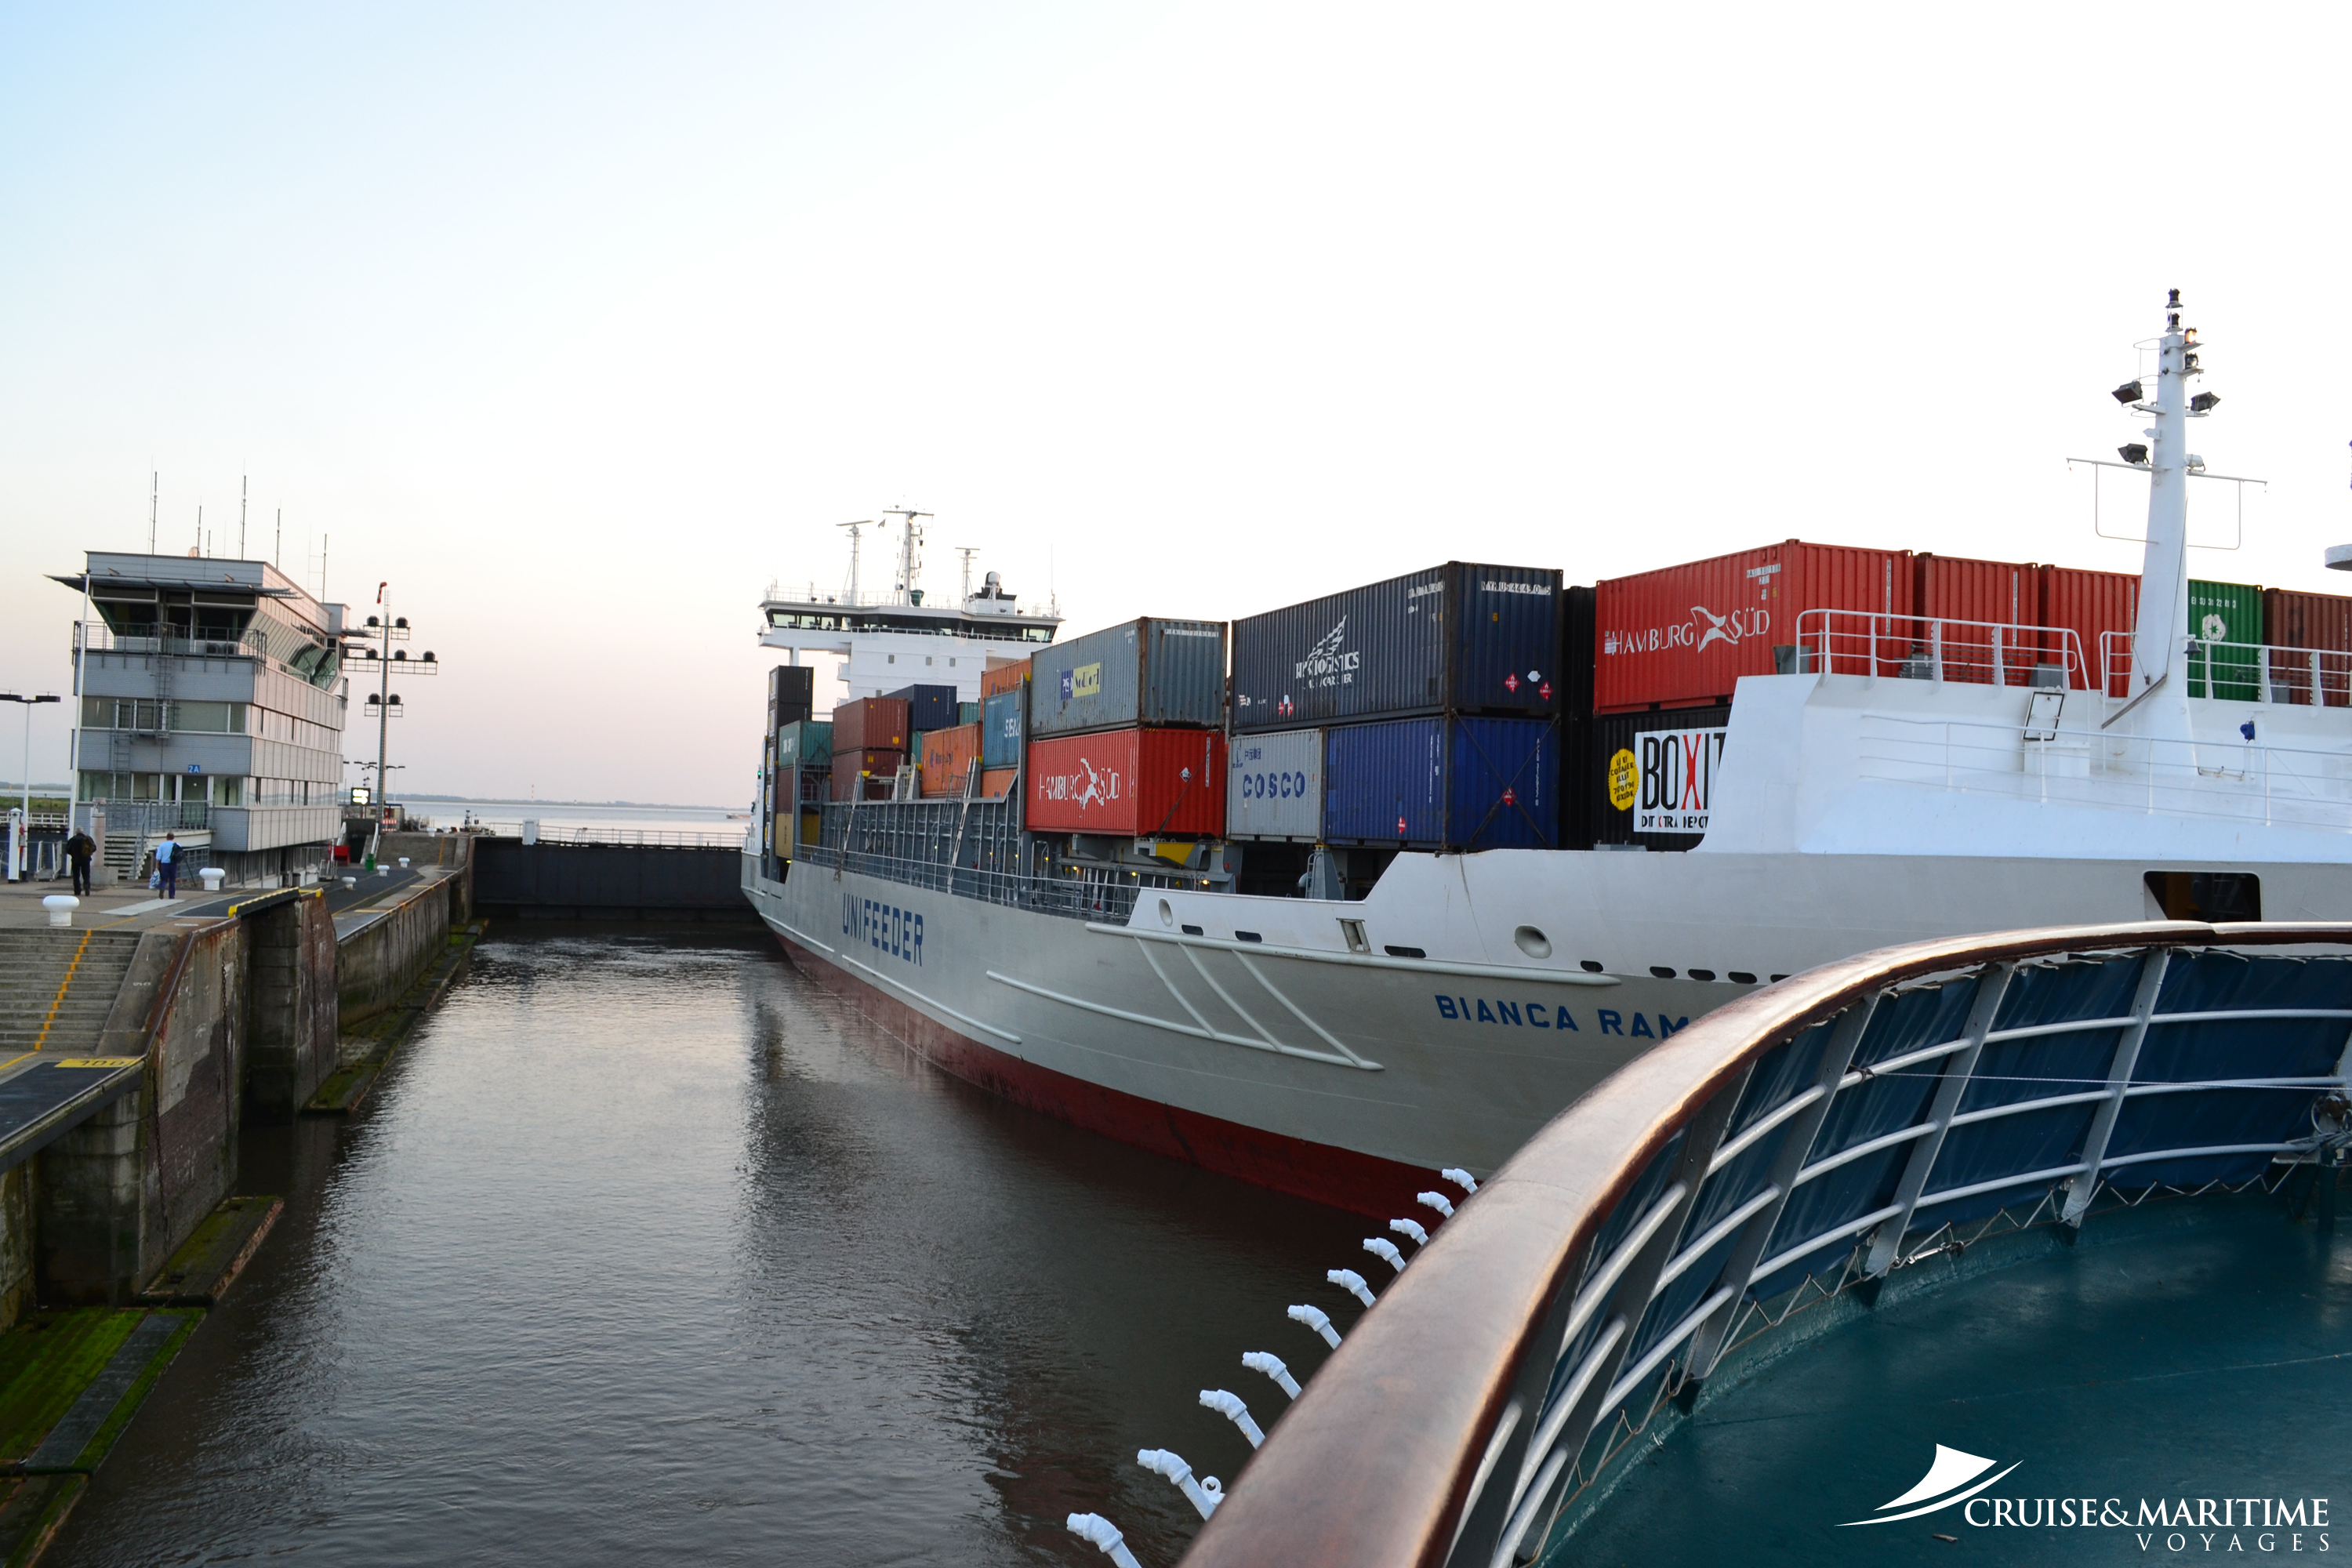 Discovery yesterday started its transit of the Kiel Canal in Germany. It is the busiest artificial waterway in the world; over 43,000 vessels passed through in 2007, excluding small craft.